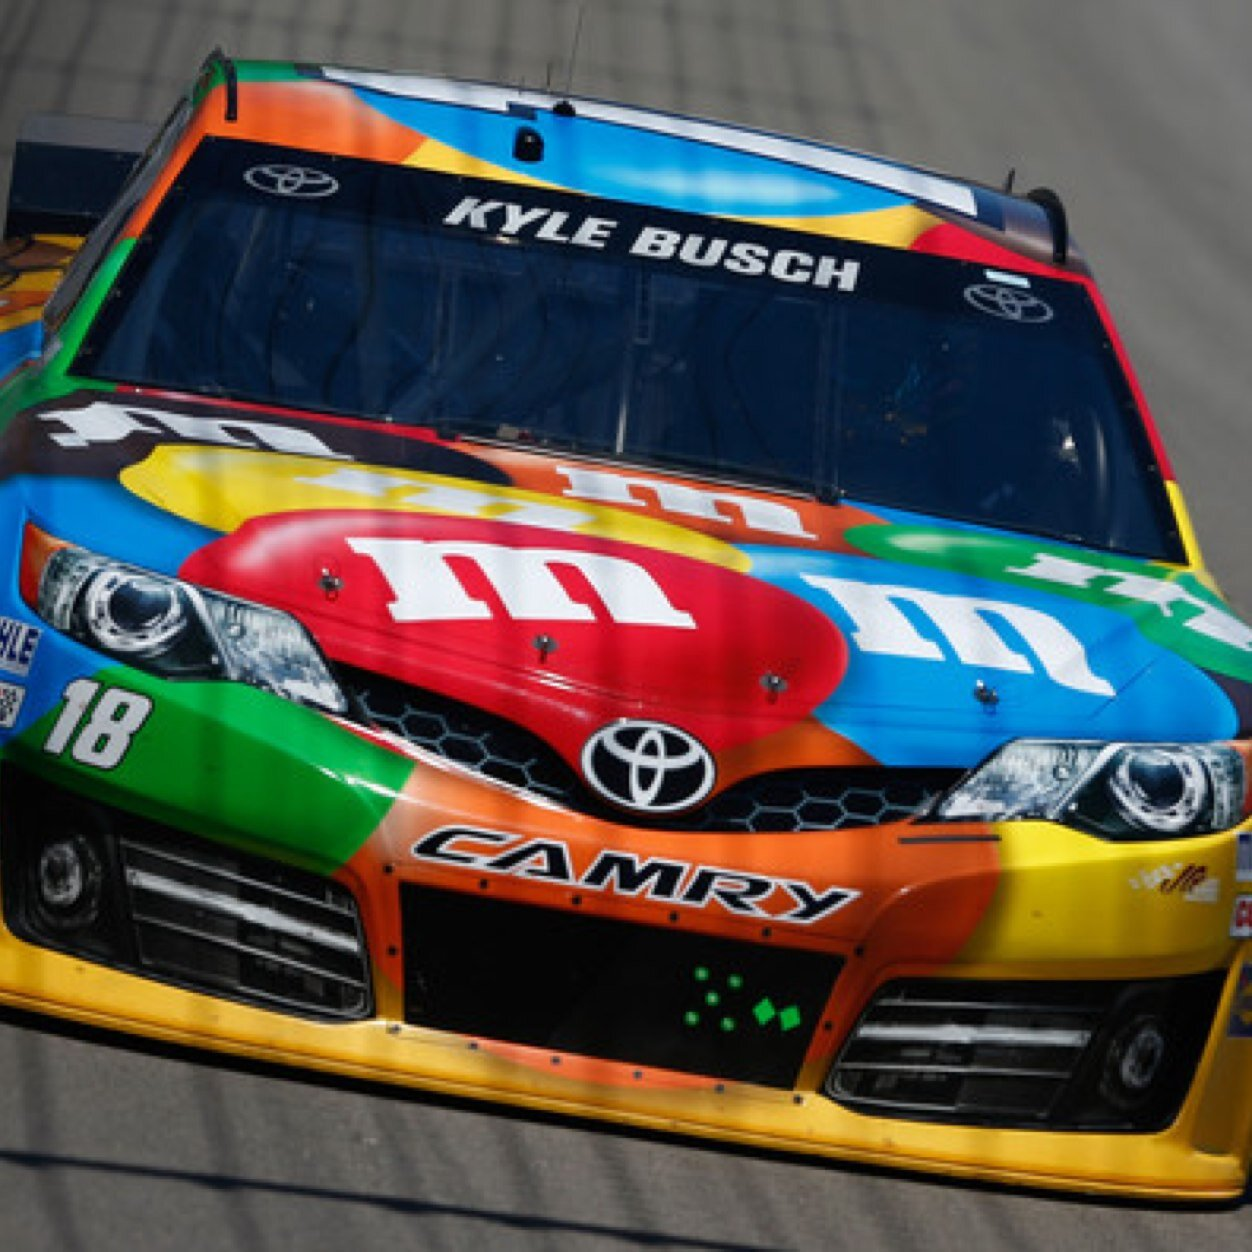 Kyle Busch Car (@KyleBusch_Car)